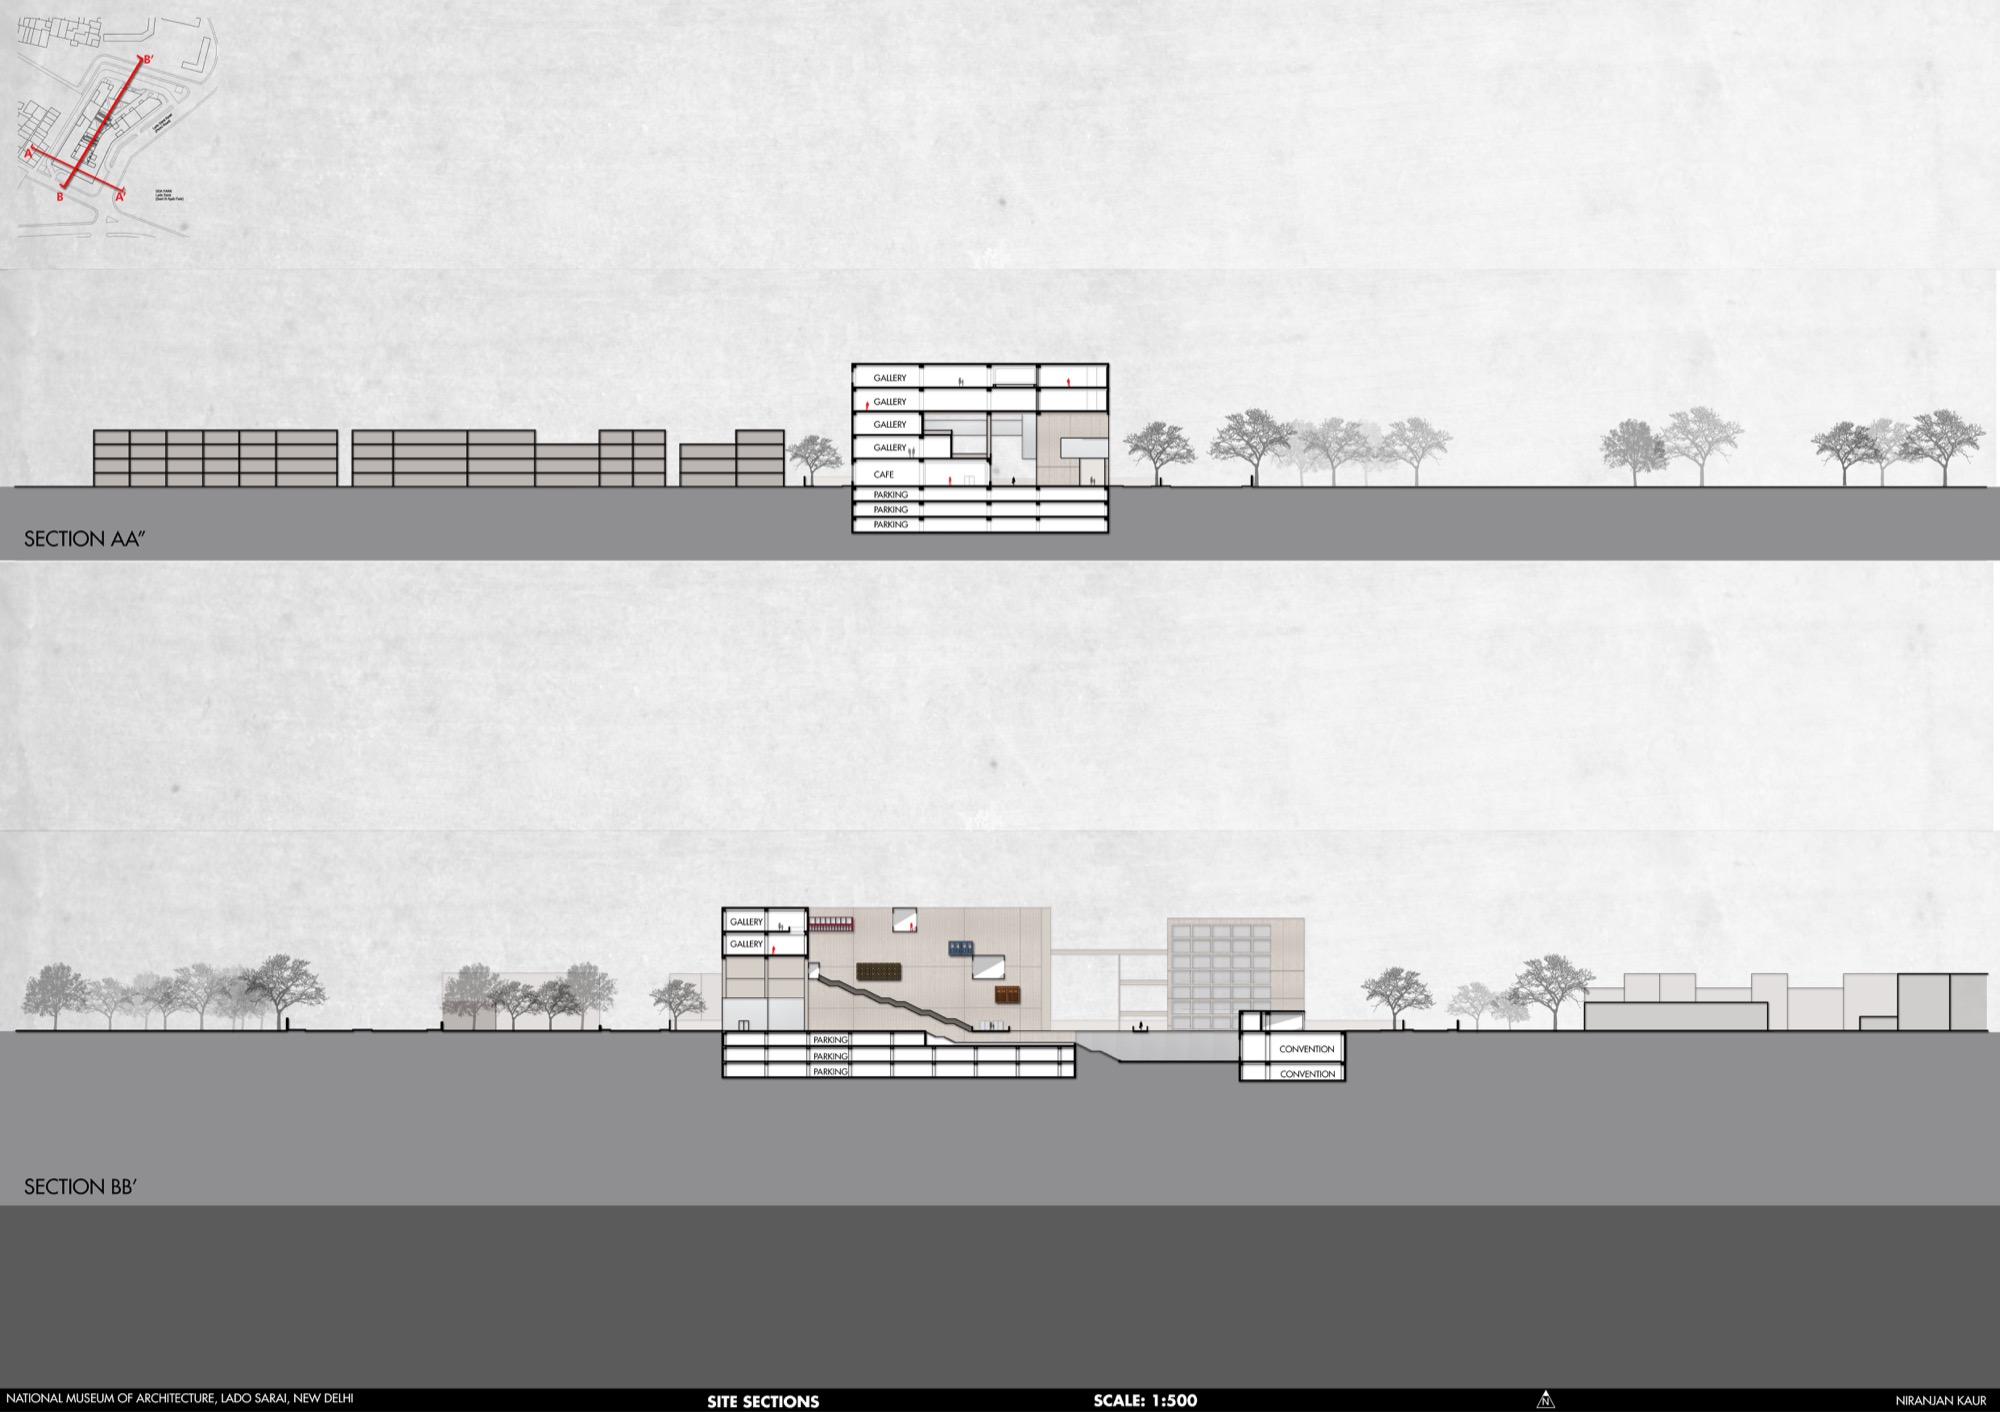 B.Arch Thesis: National Museum of Architecture, New Delhi, by Niranjan Kaur 38